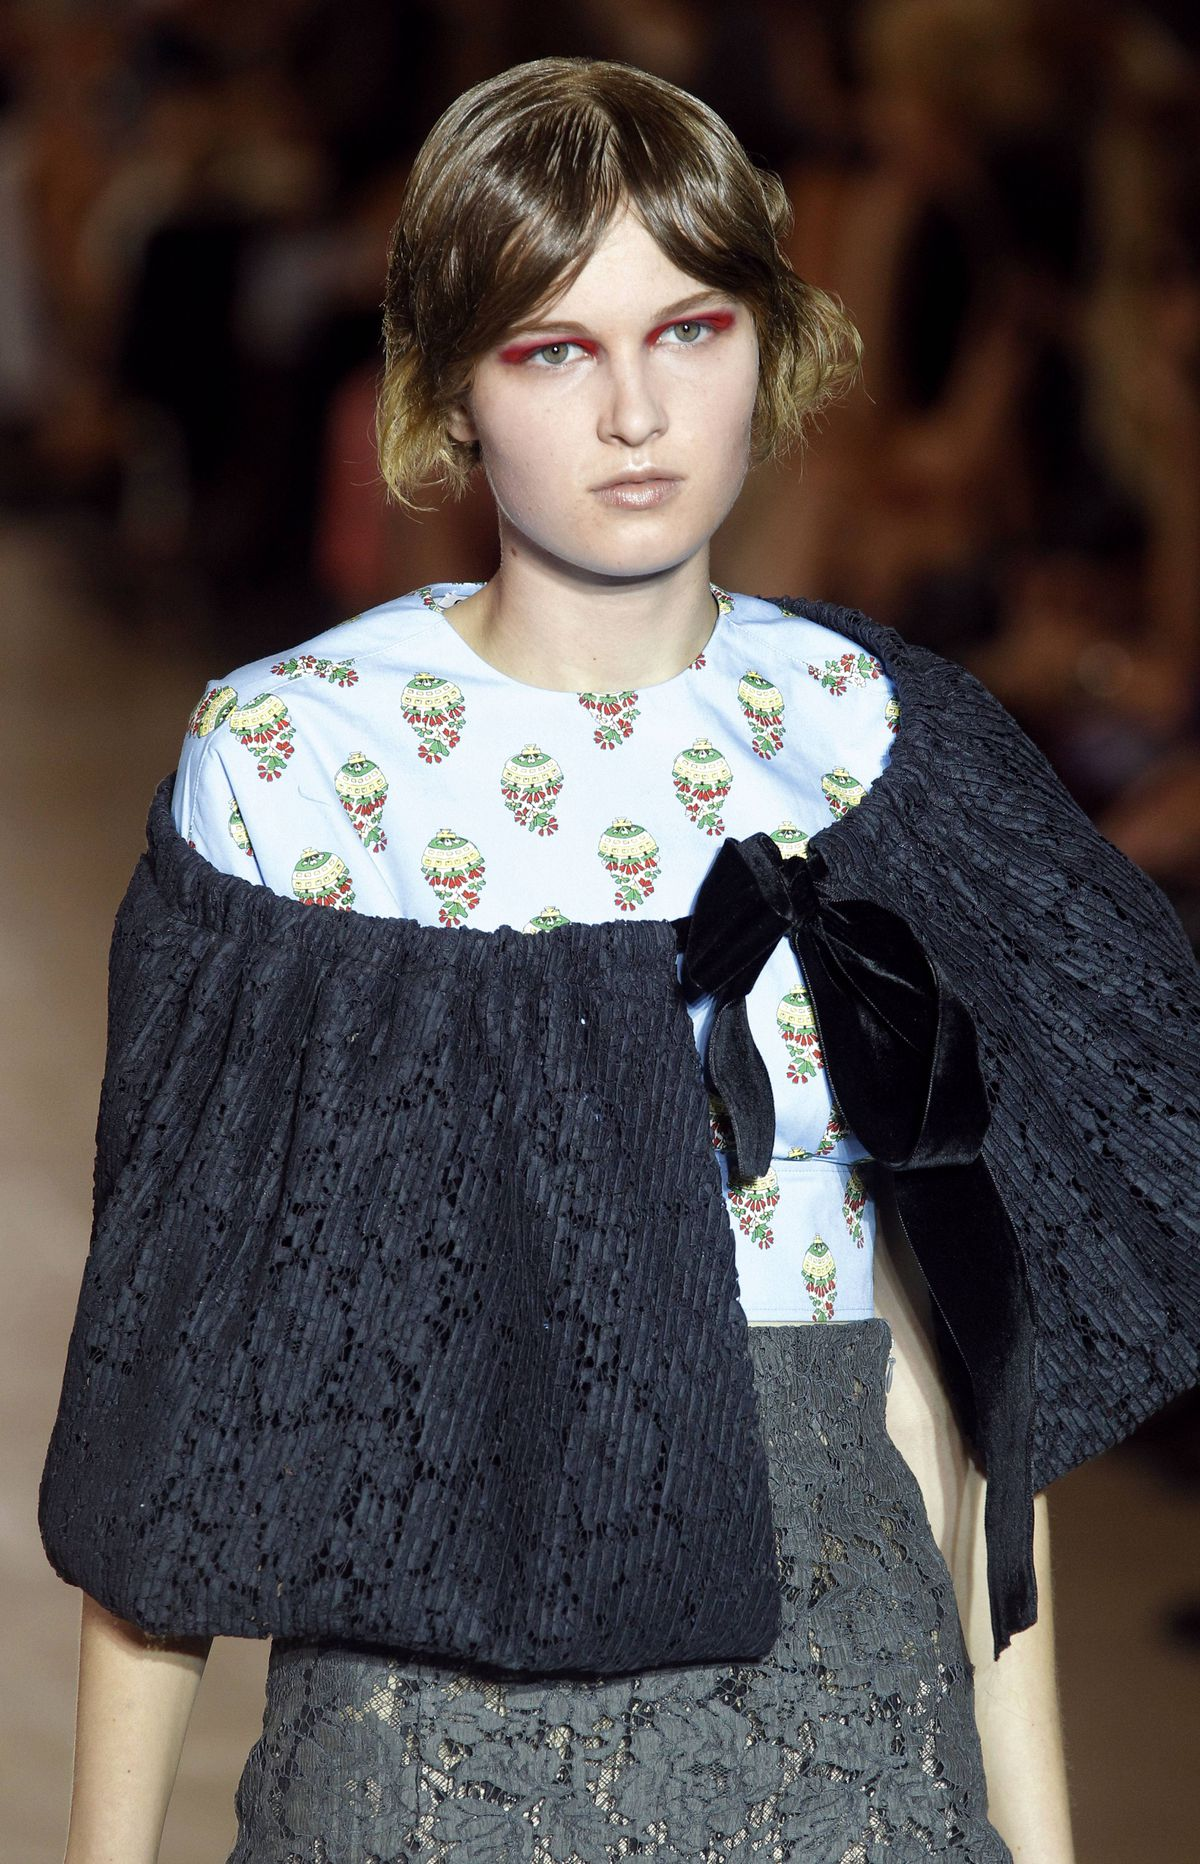 Miu Miu Spring/Summer 2012 ready-to-wear collection Miu Miu is the second collection designed by Miuccia Prada and has often been considered Prada's younger, quirky sister. The collection began uncharacteristically sedate in greys and blacks. Granted, this beribboned curtain adornment is not your average cover-up.